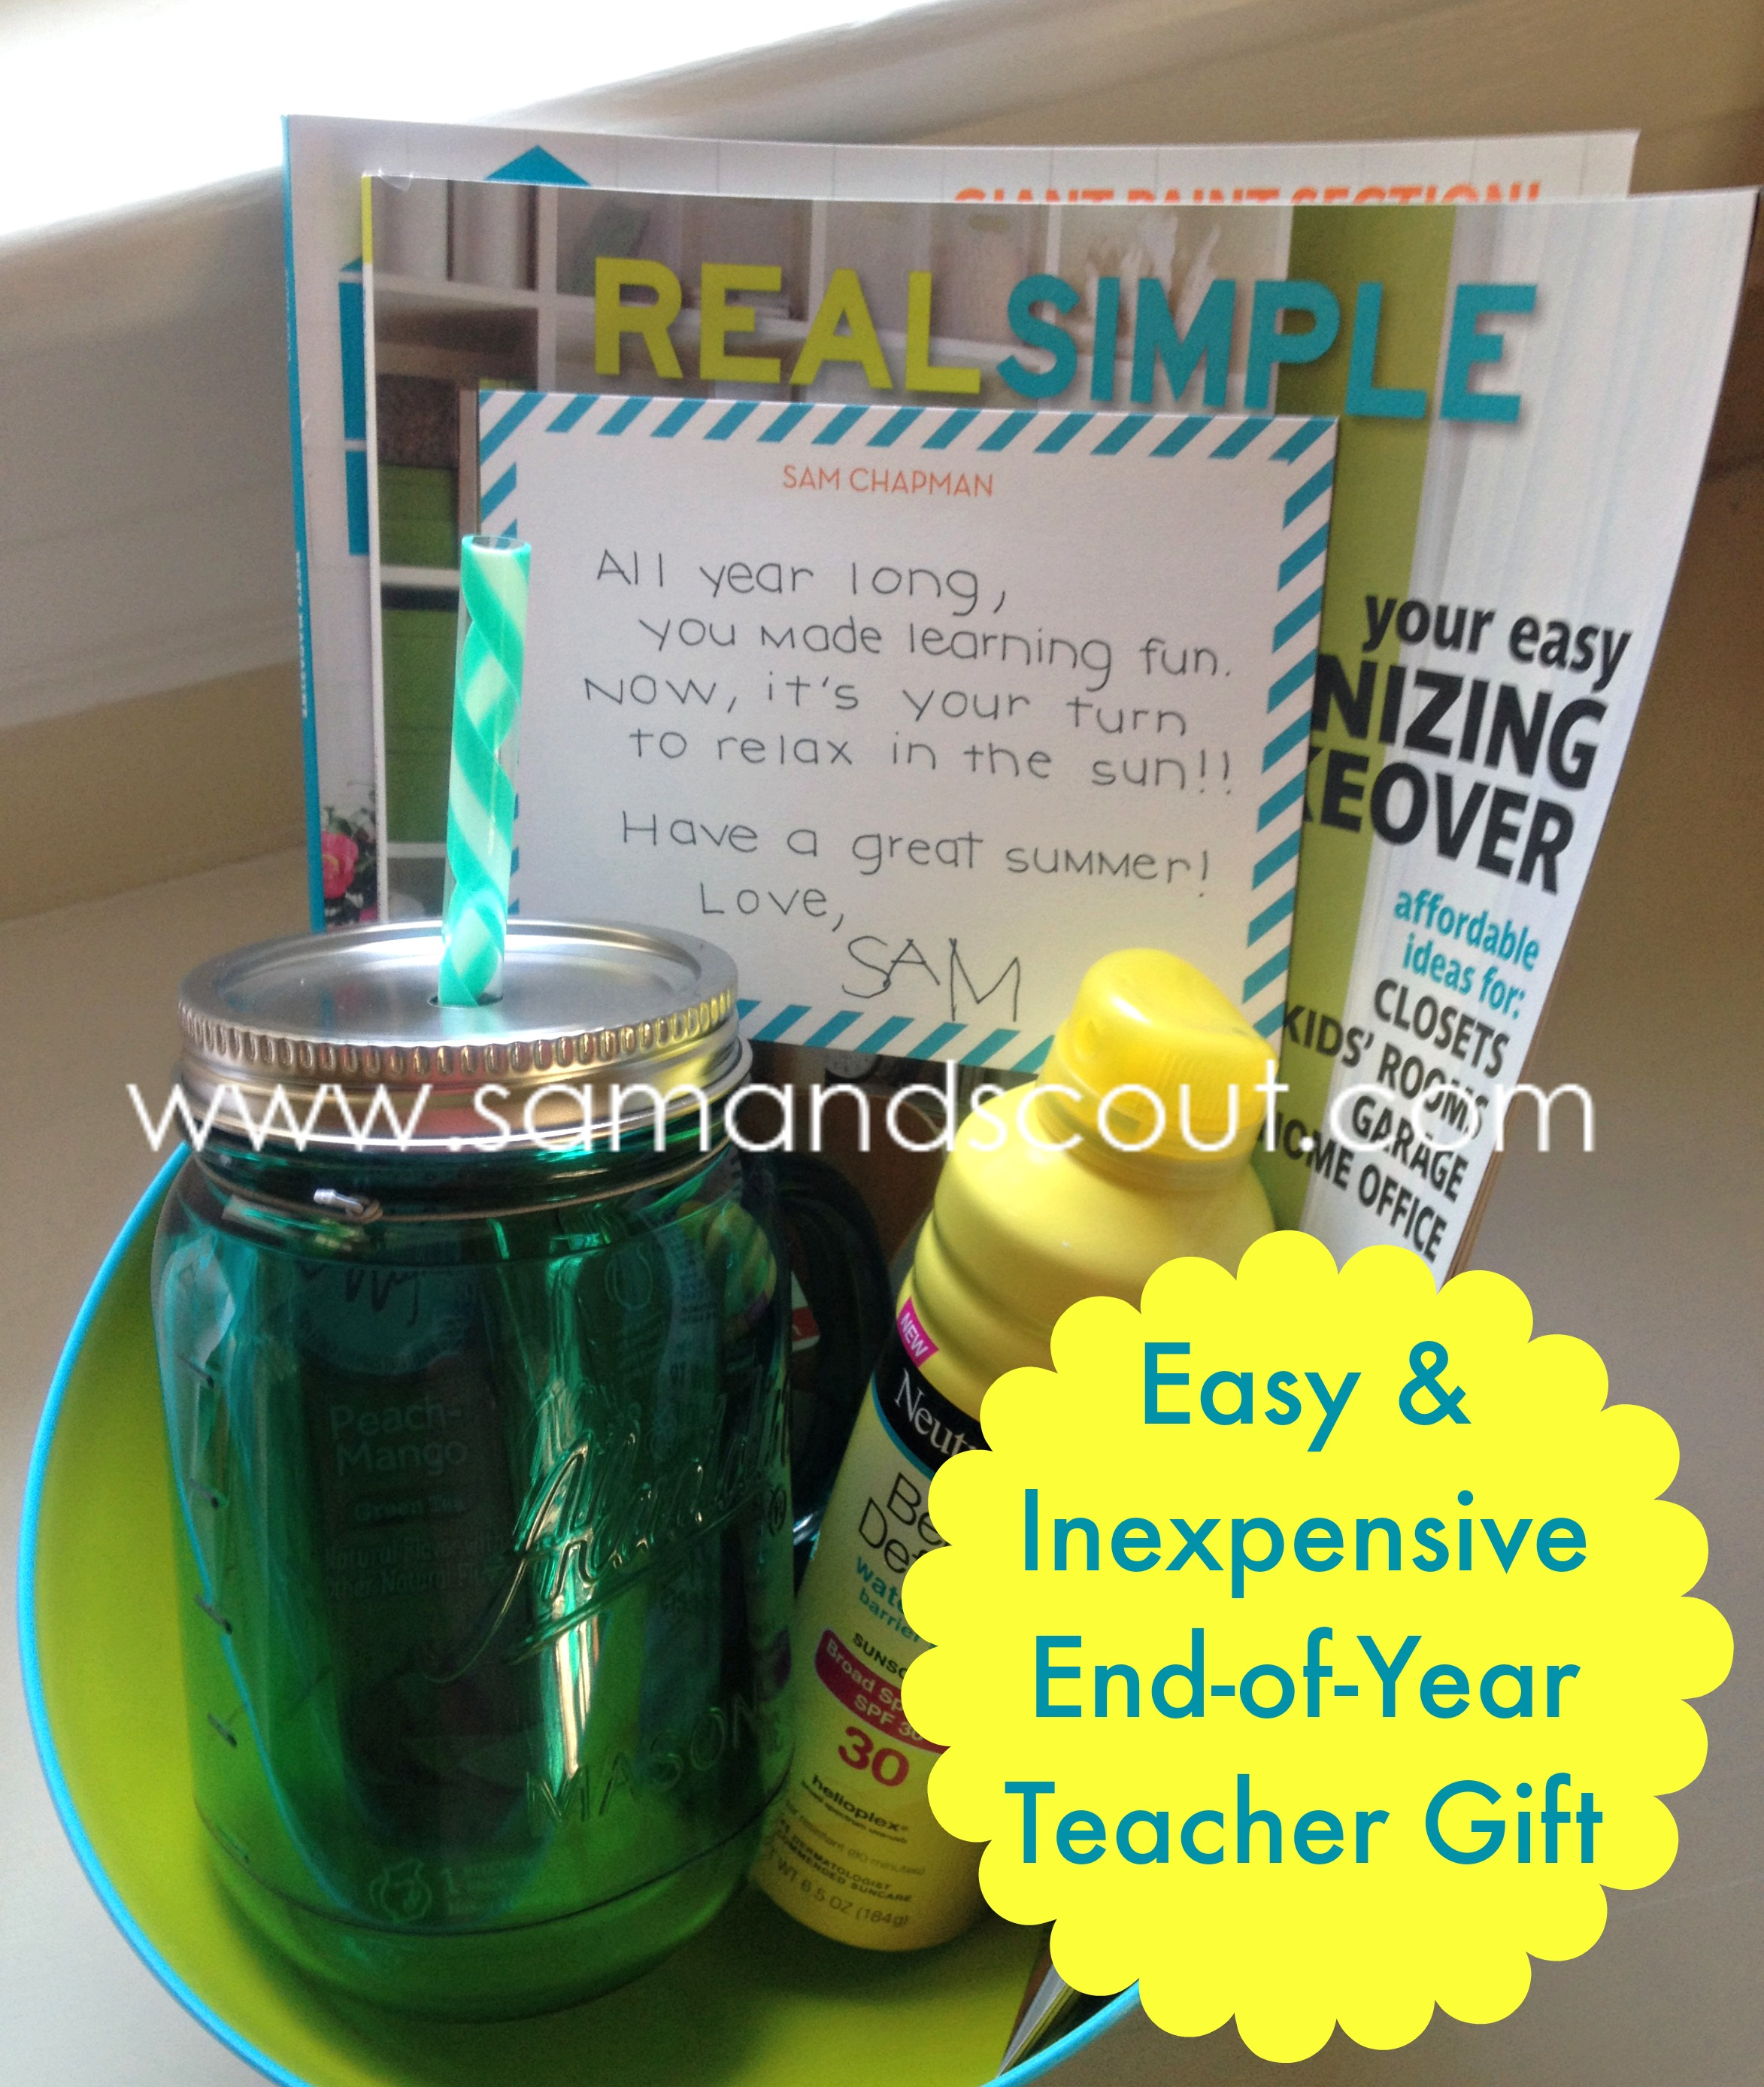 Easy and Inexpensive End-of-Year Teacher Gift - Teaching Sam and Scout